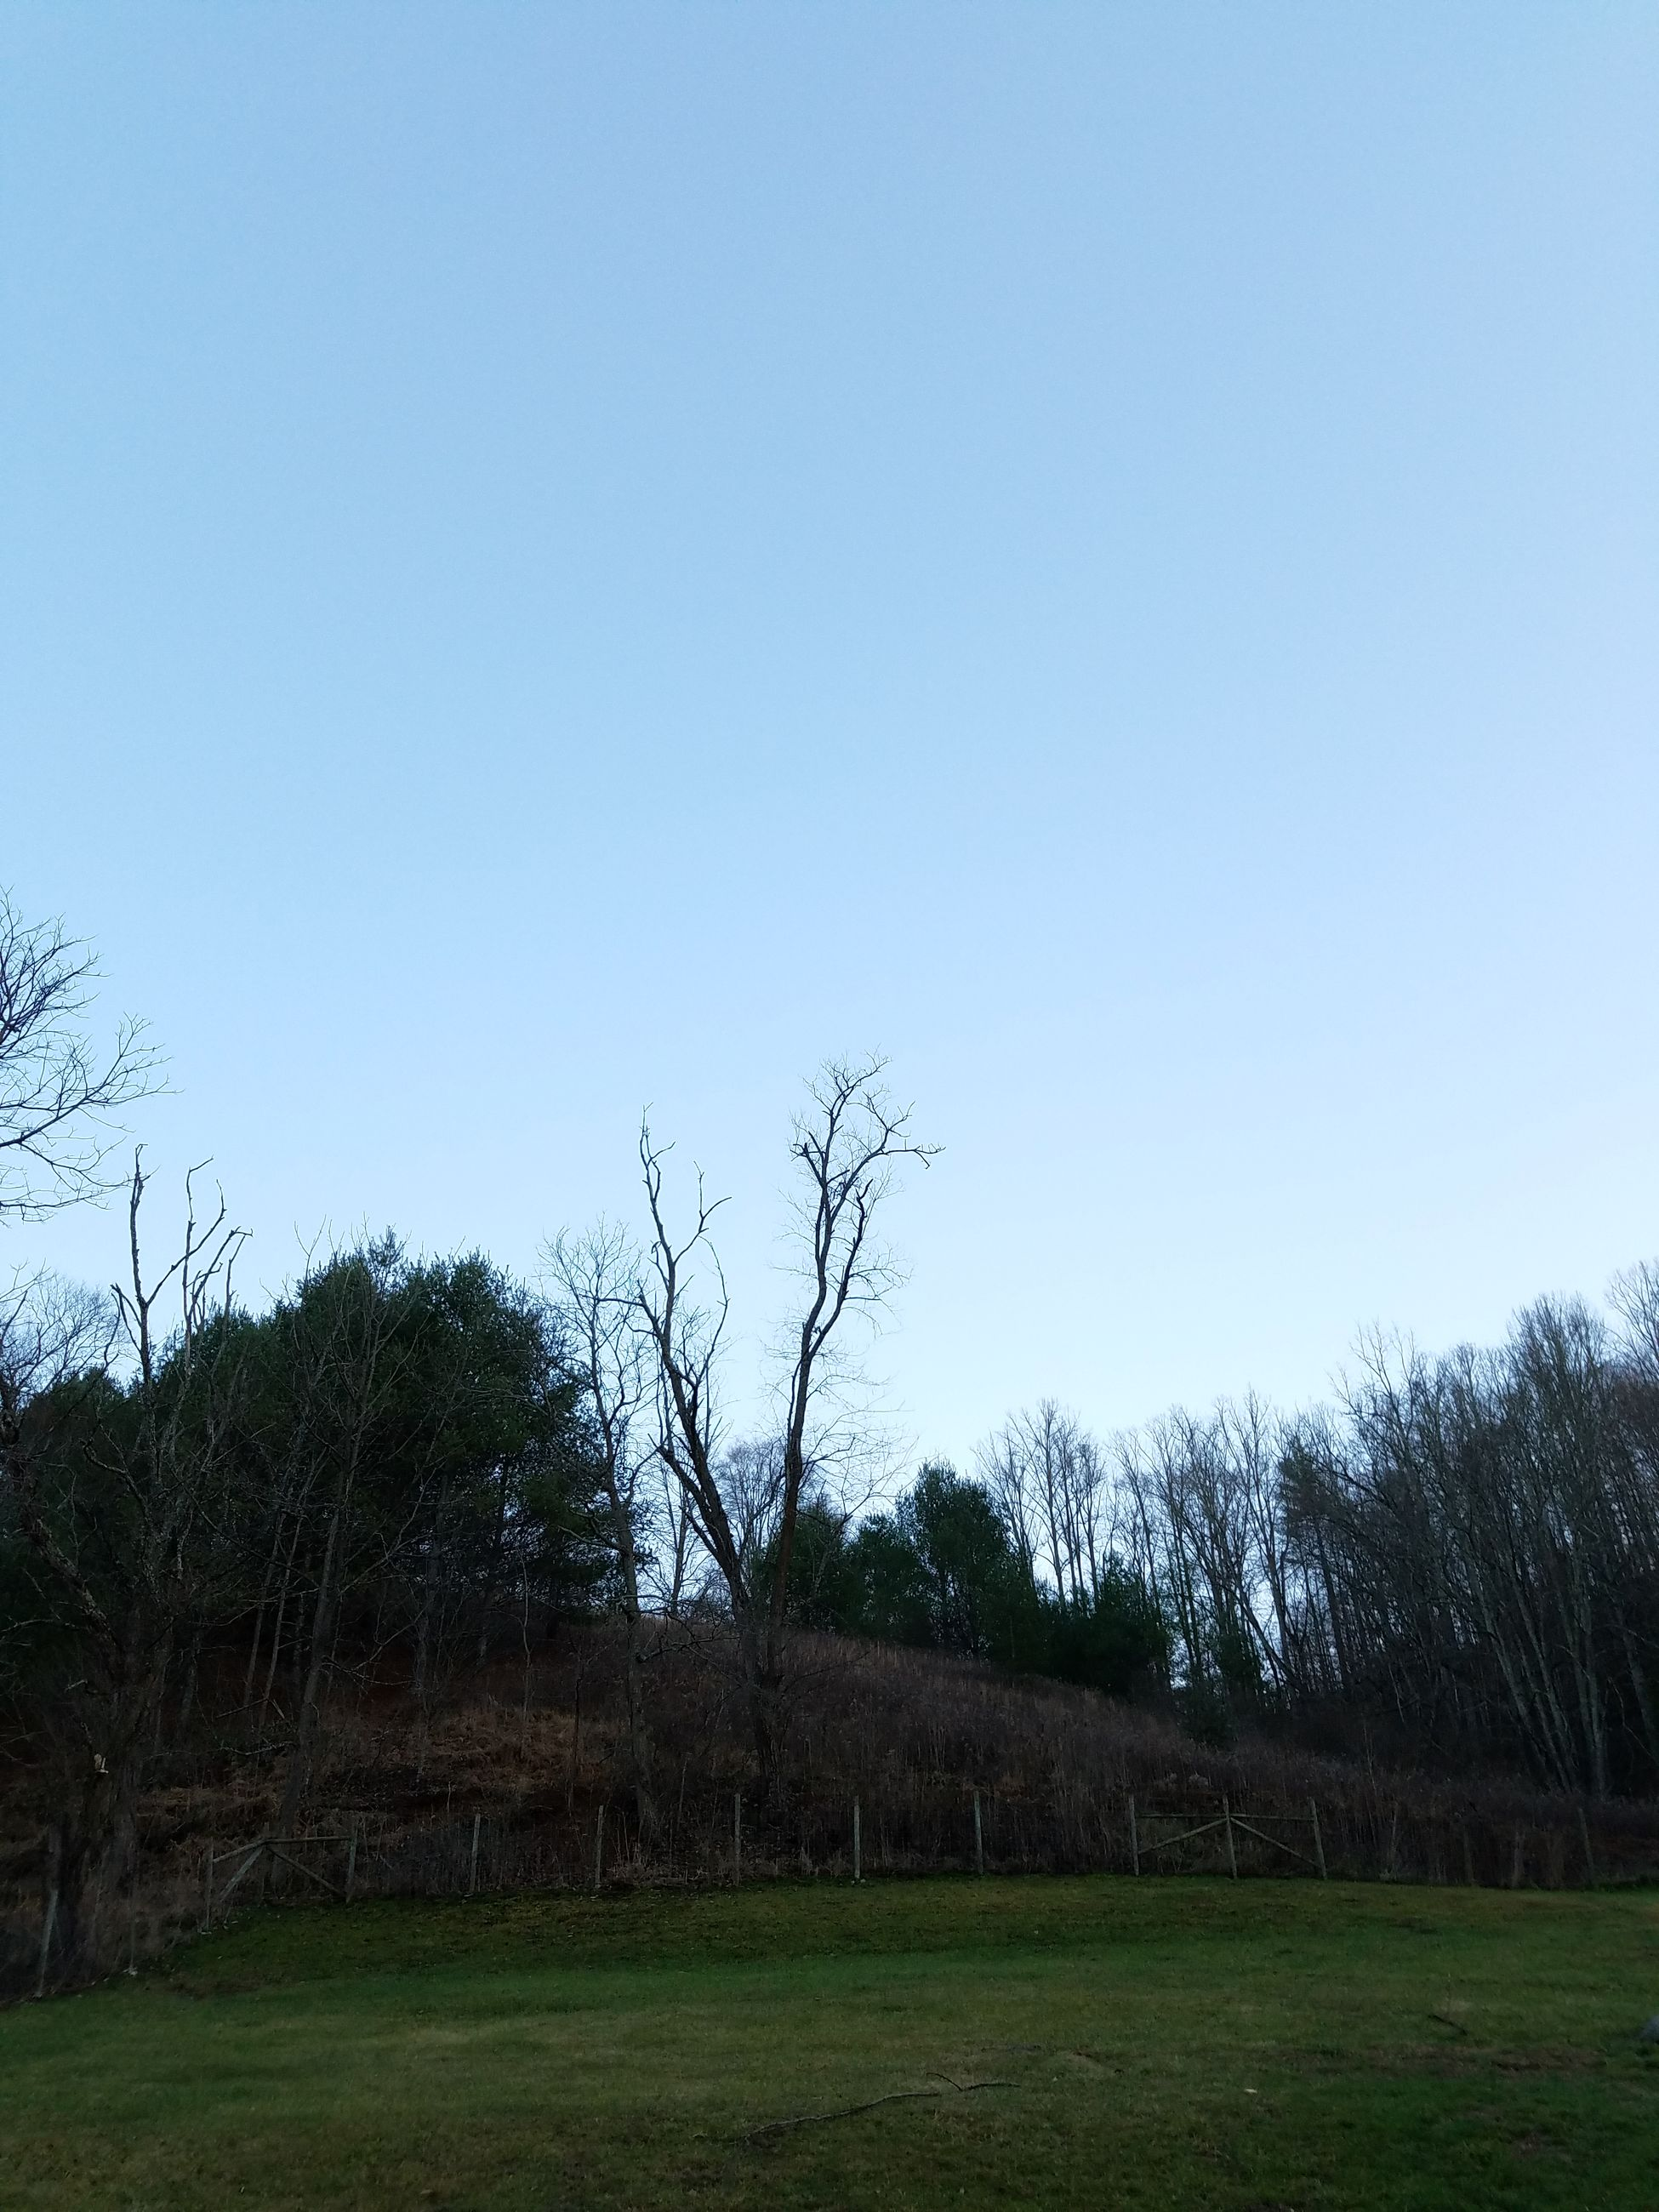 tree, clear sky, no people, sky, tranquility, nature, field, growth, outdoors, grass, day, beauty in nature